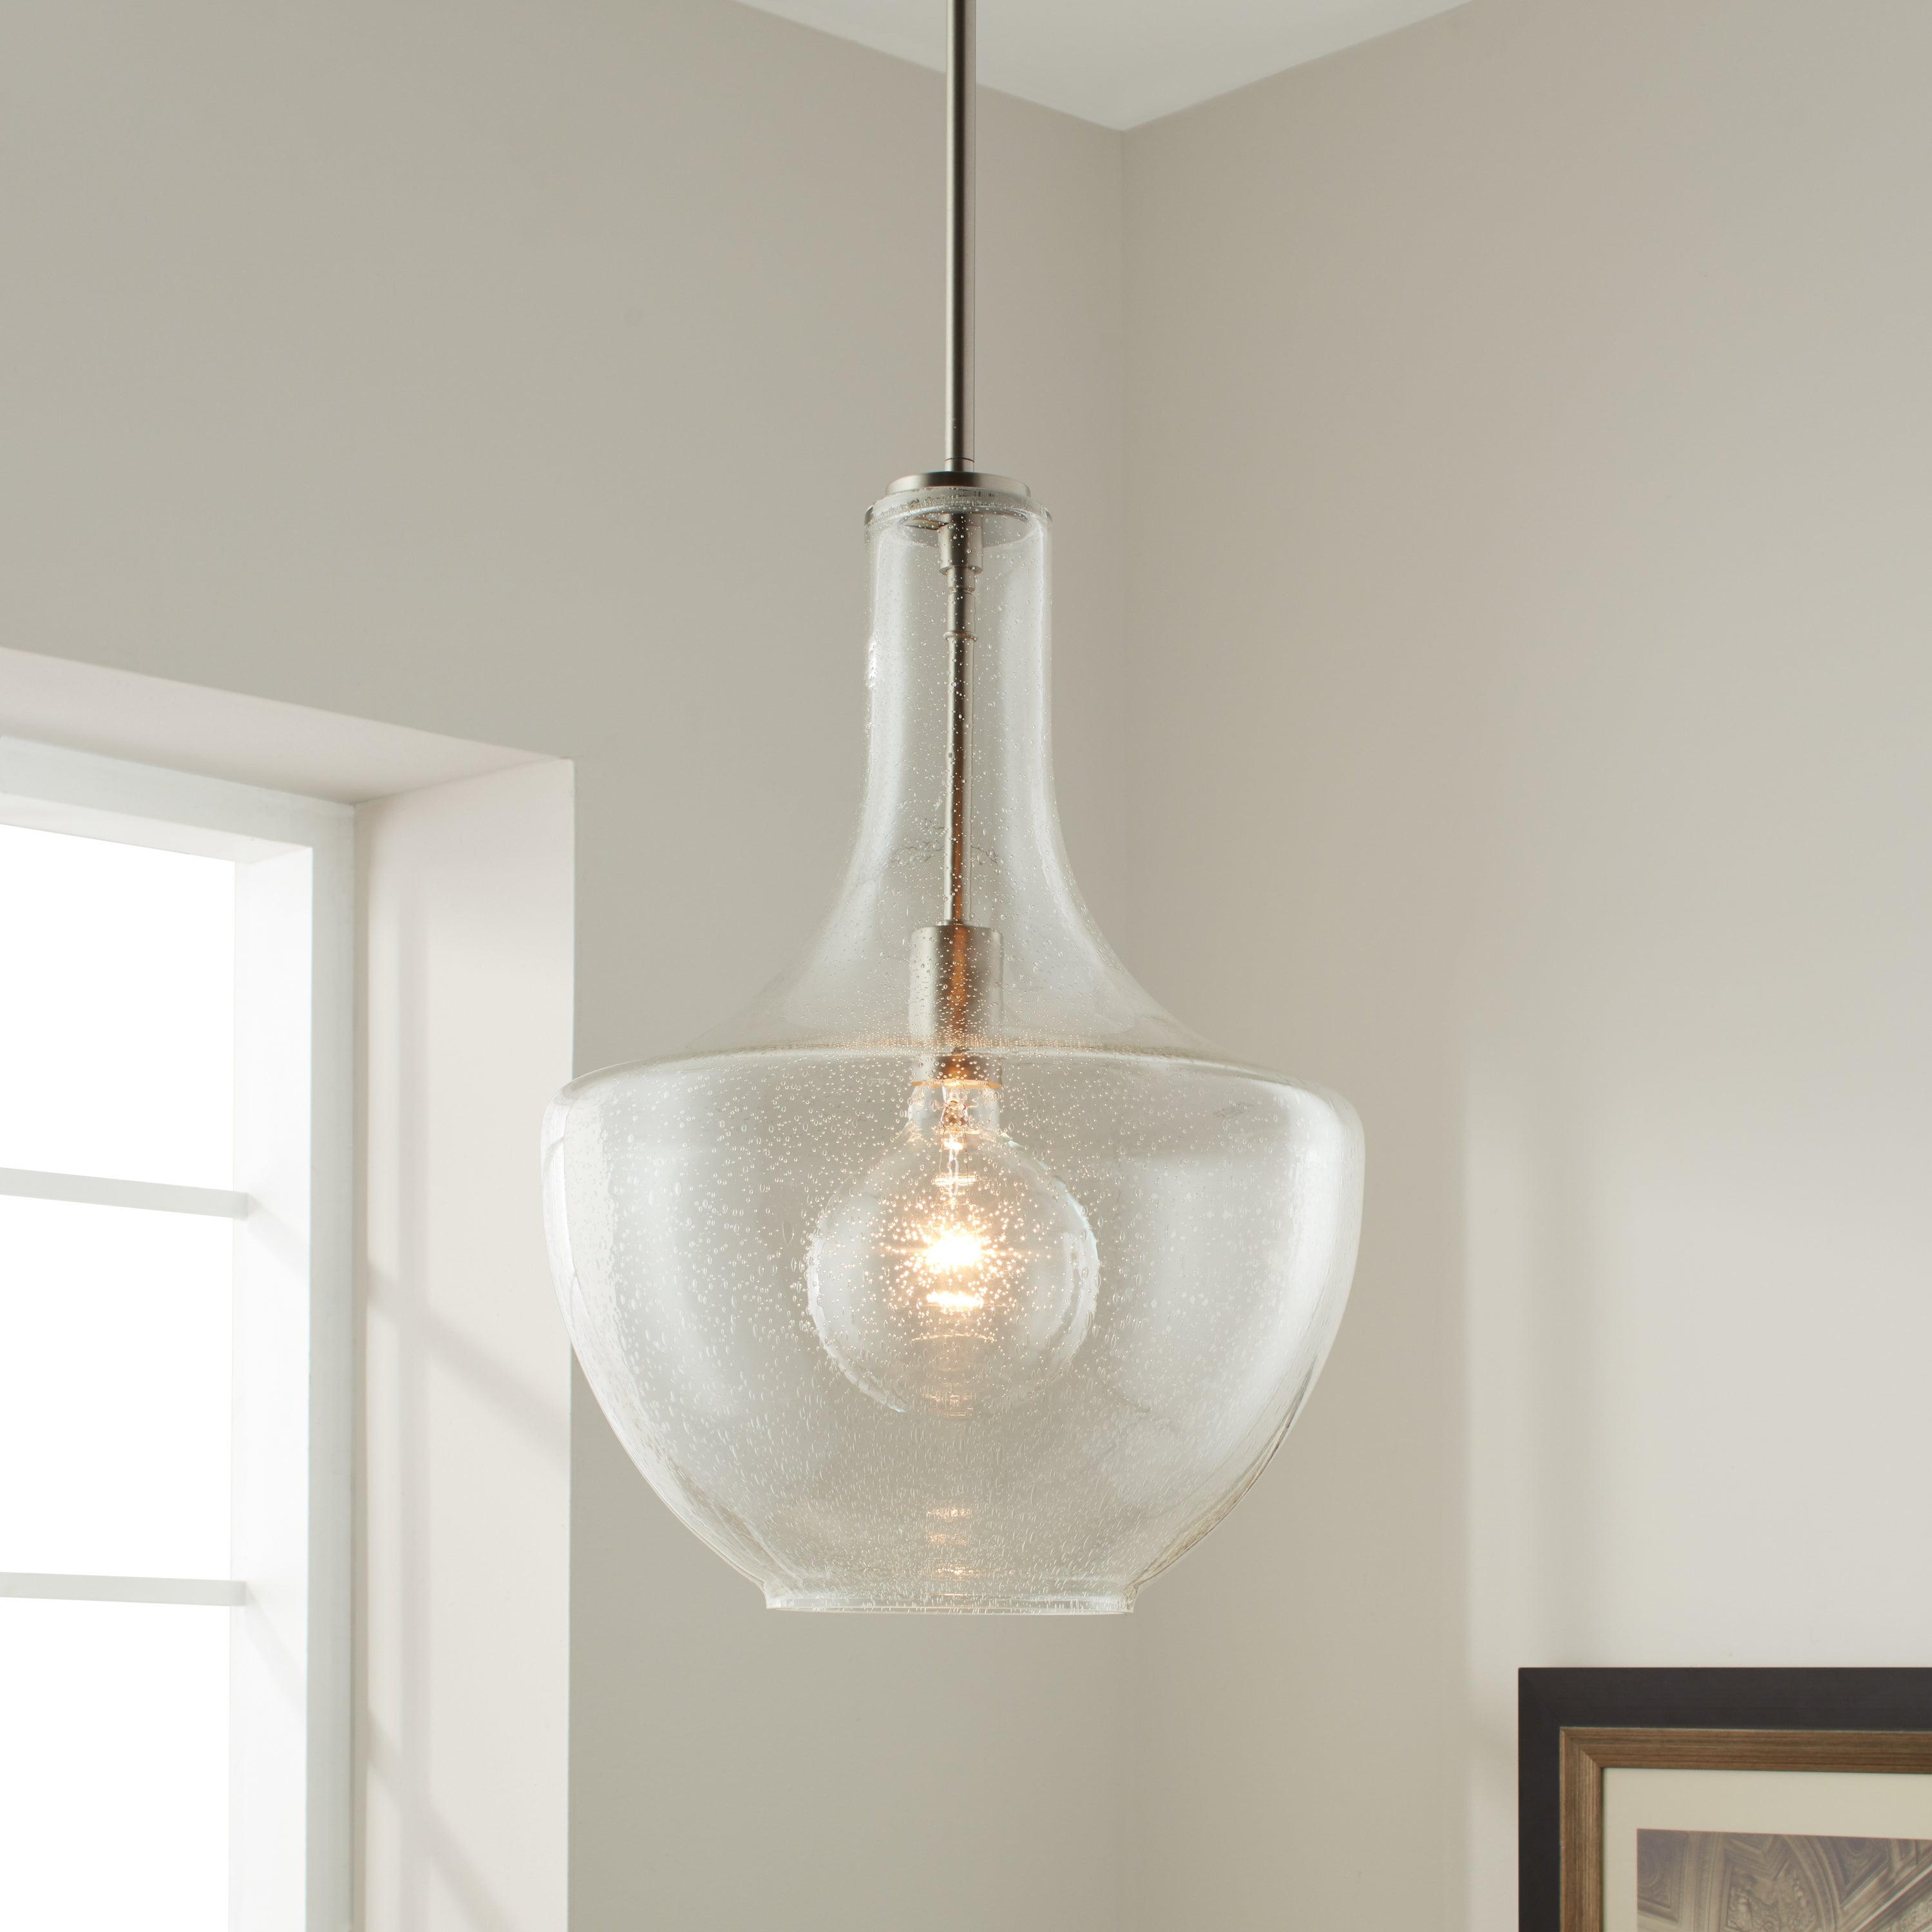 Kichler Lighting Everly Collection 1 Light Brushed Nickel Pendant 13 75 Inch Diameter On Free Shipping Today 12094224